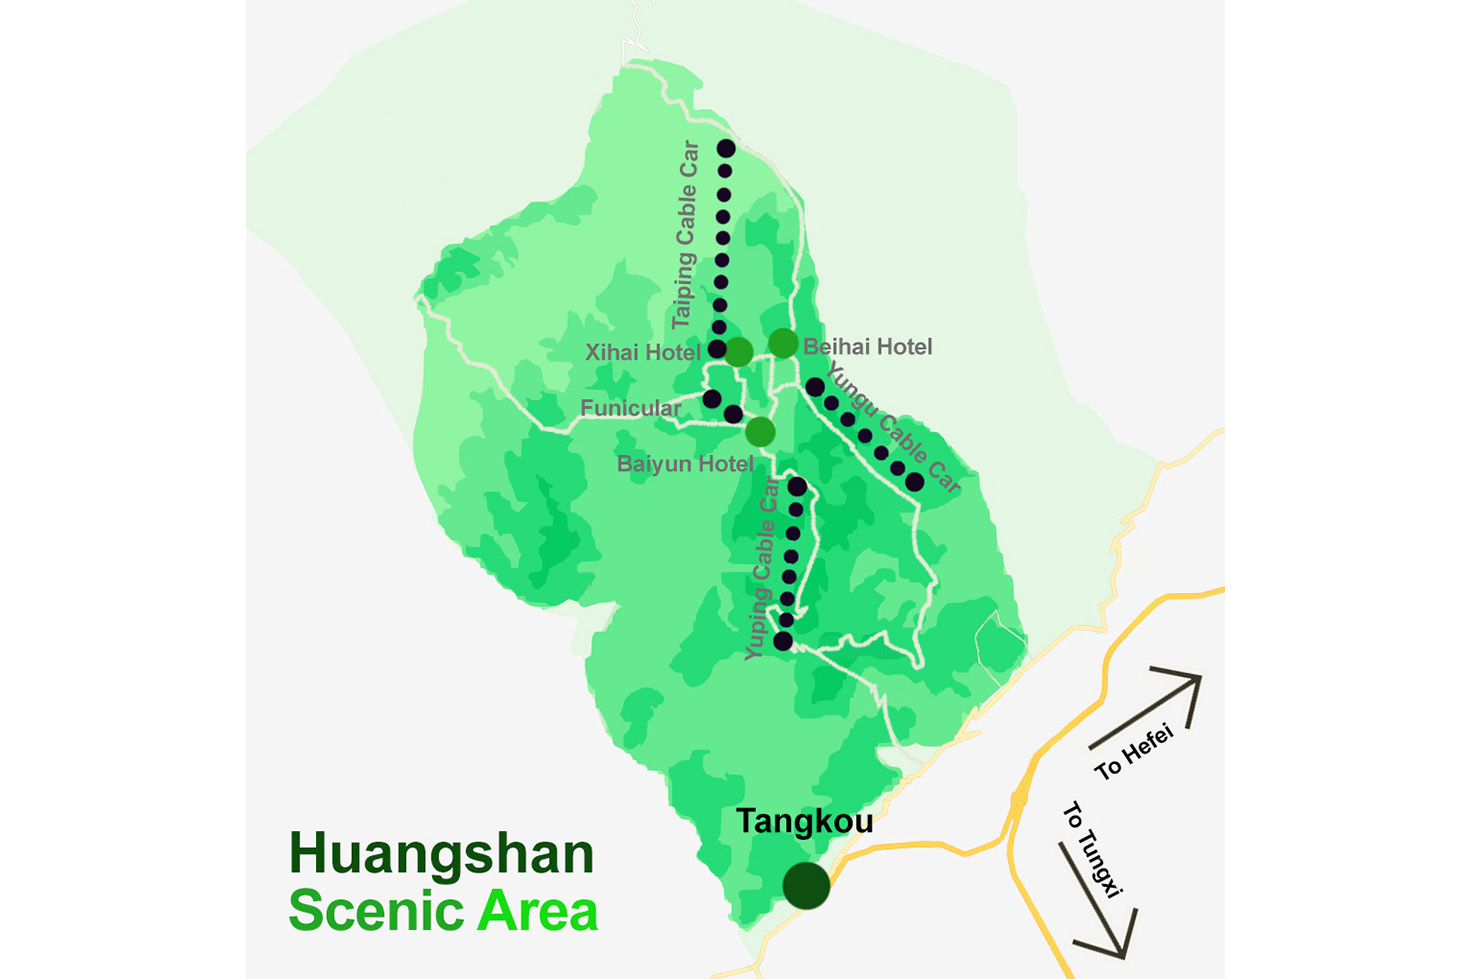 Huangshan Scenic Area Map